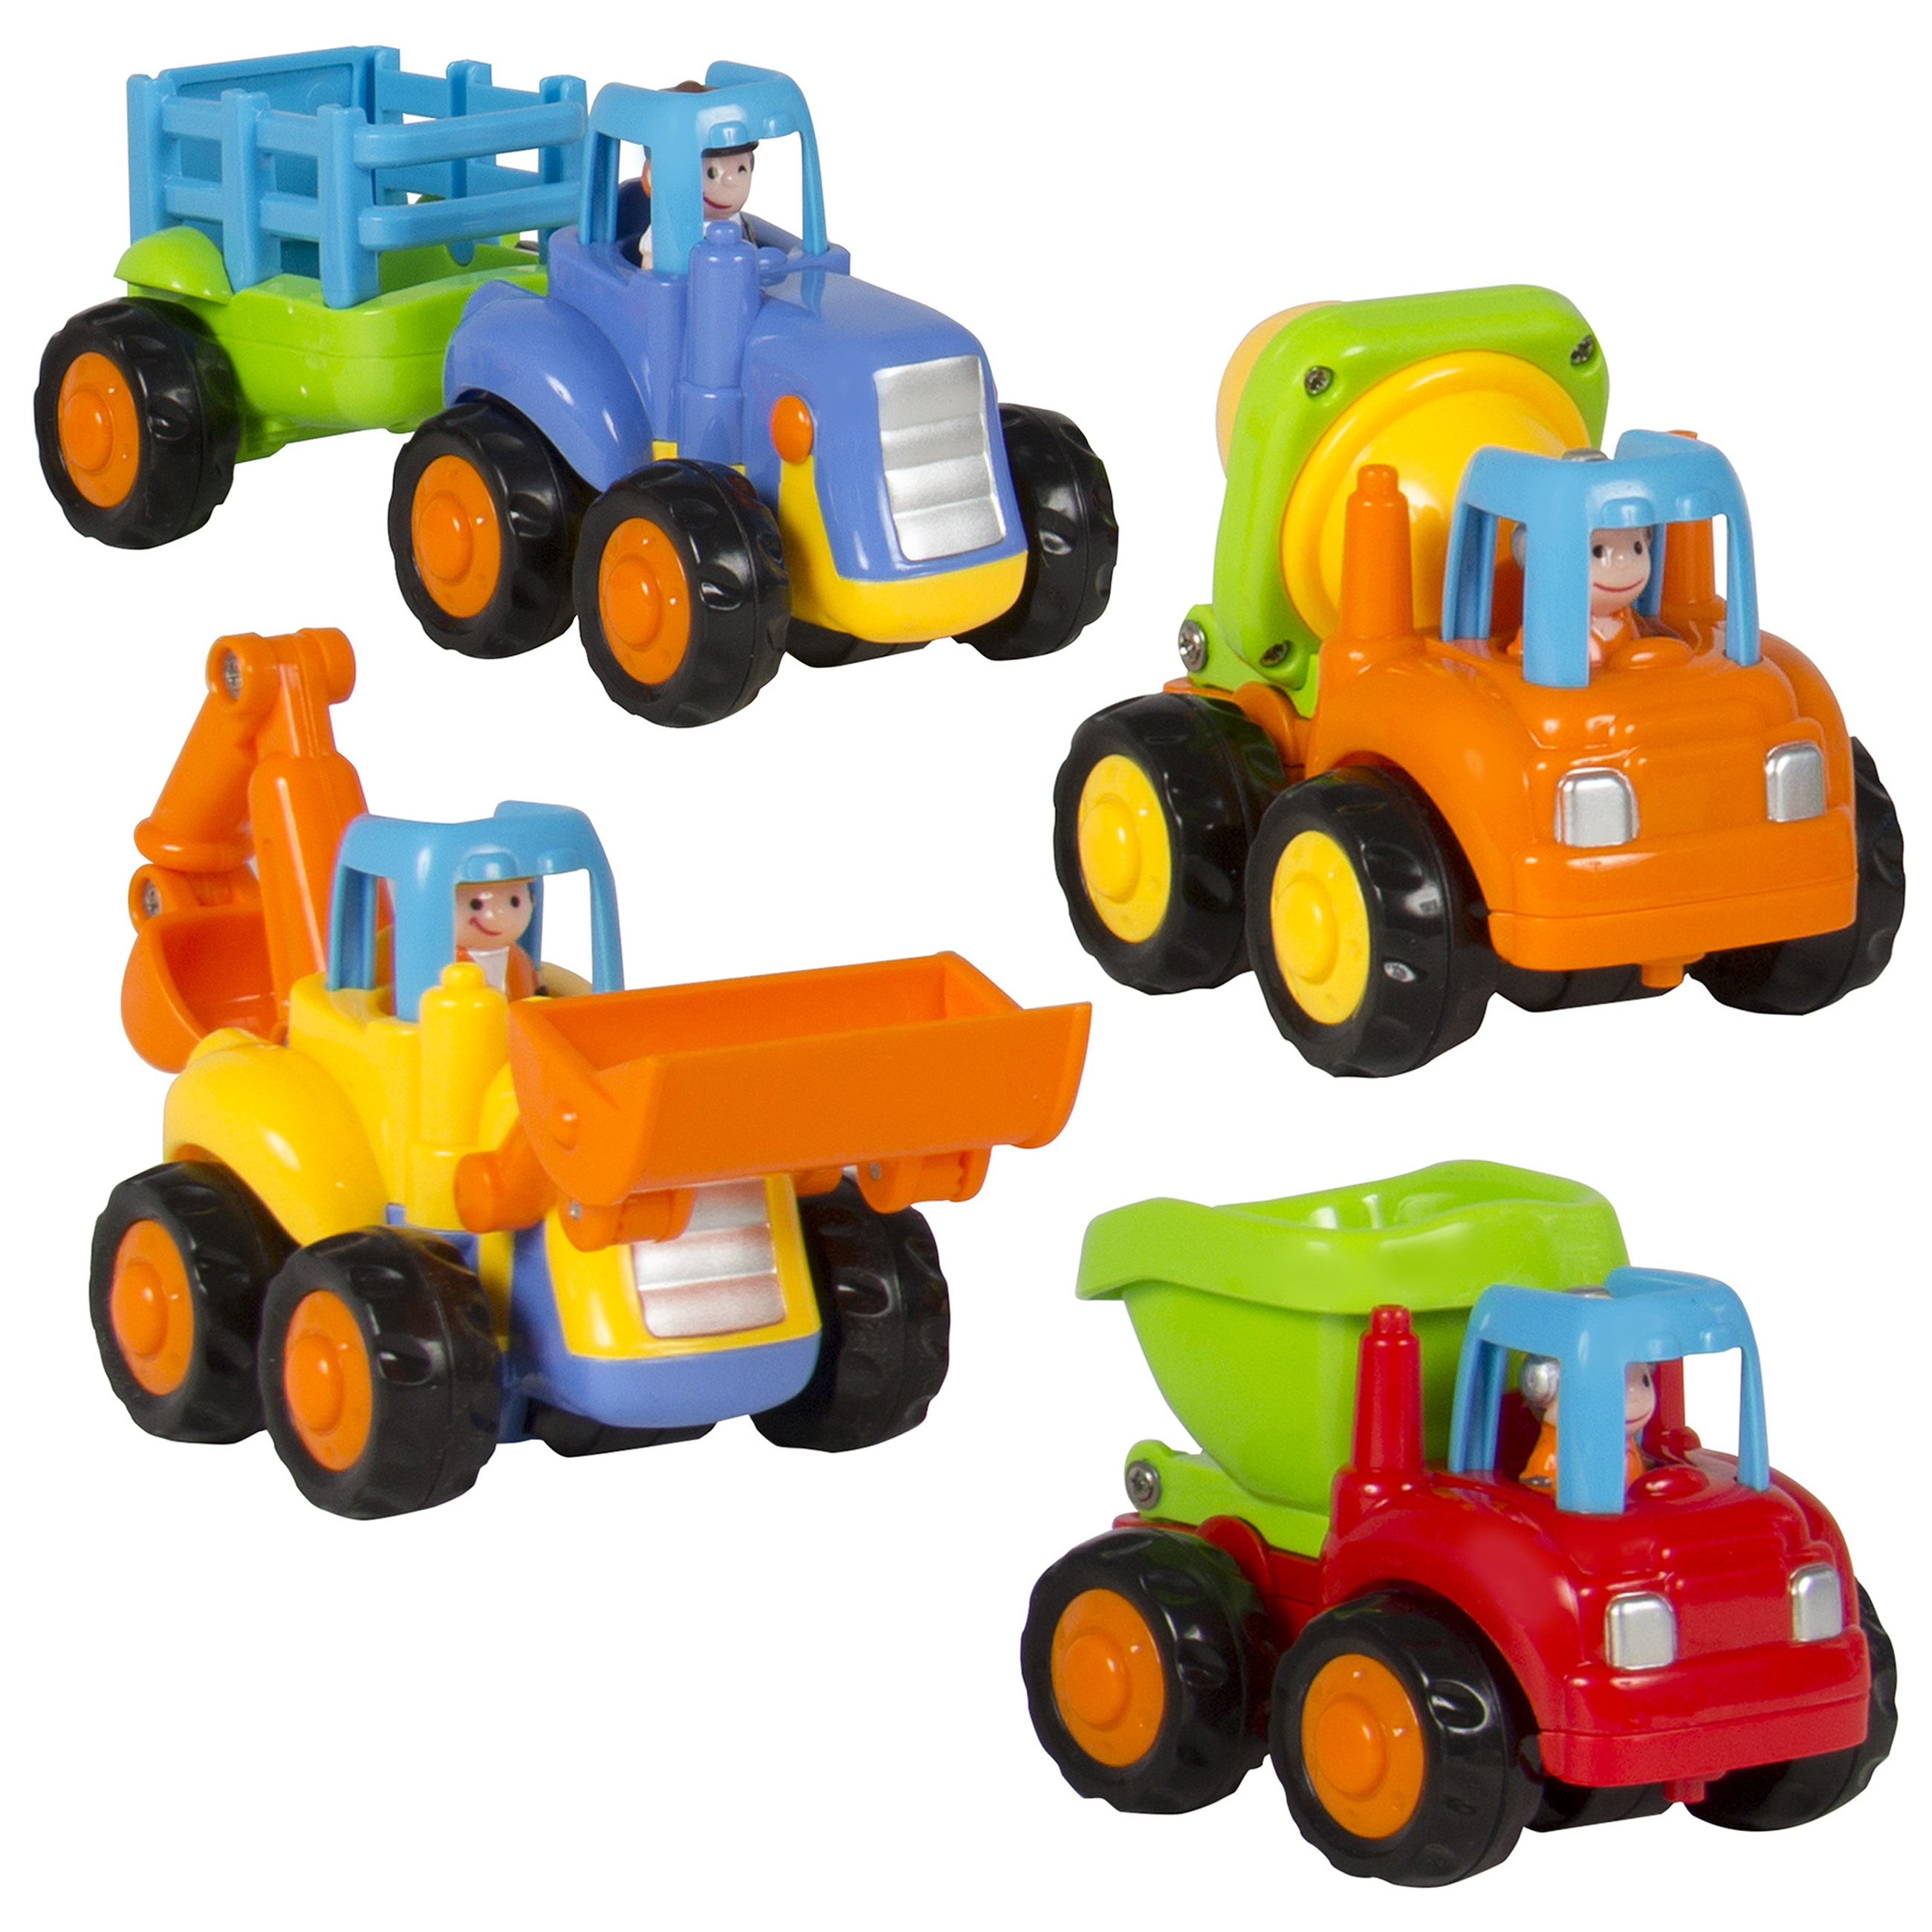 Best Choice Products Set of 4 Push and Go Friction Powered Car Toys,Tractor, Bull Dozer... by Best Choice Products